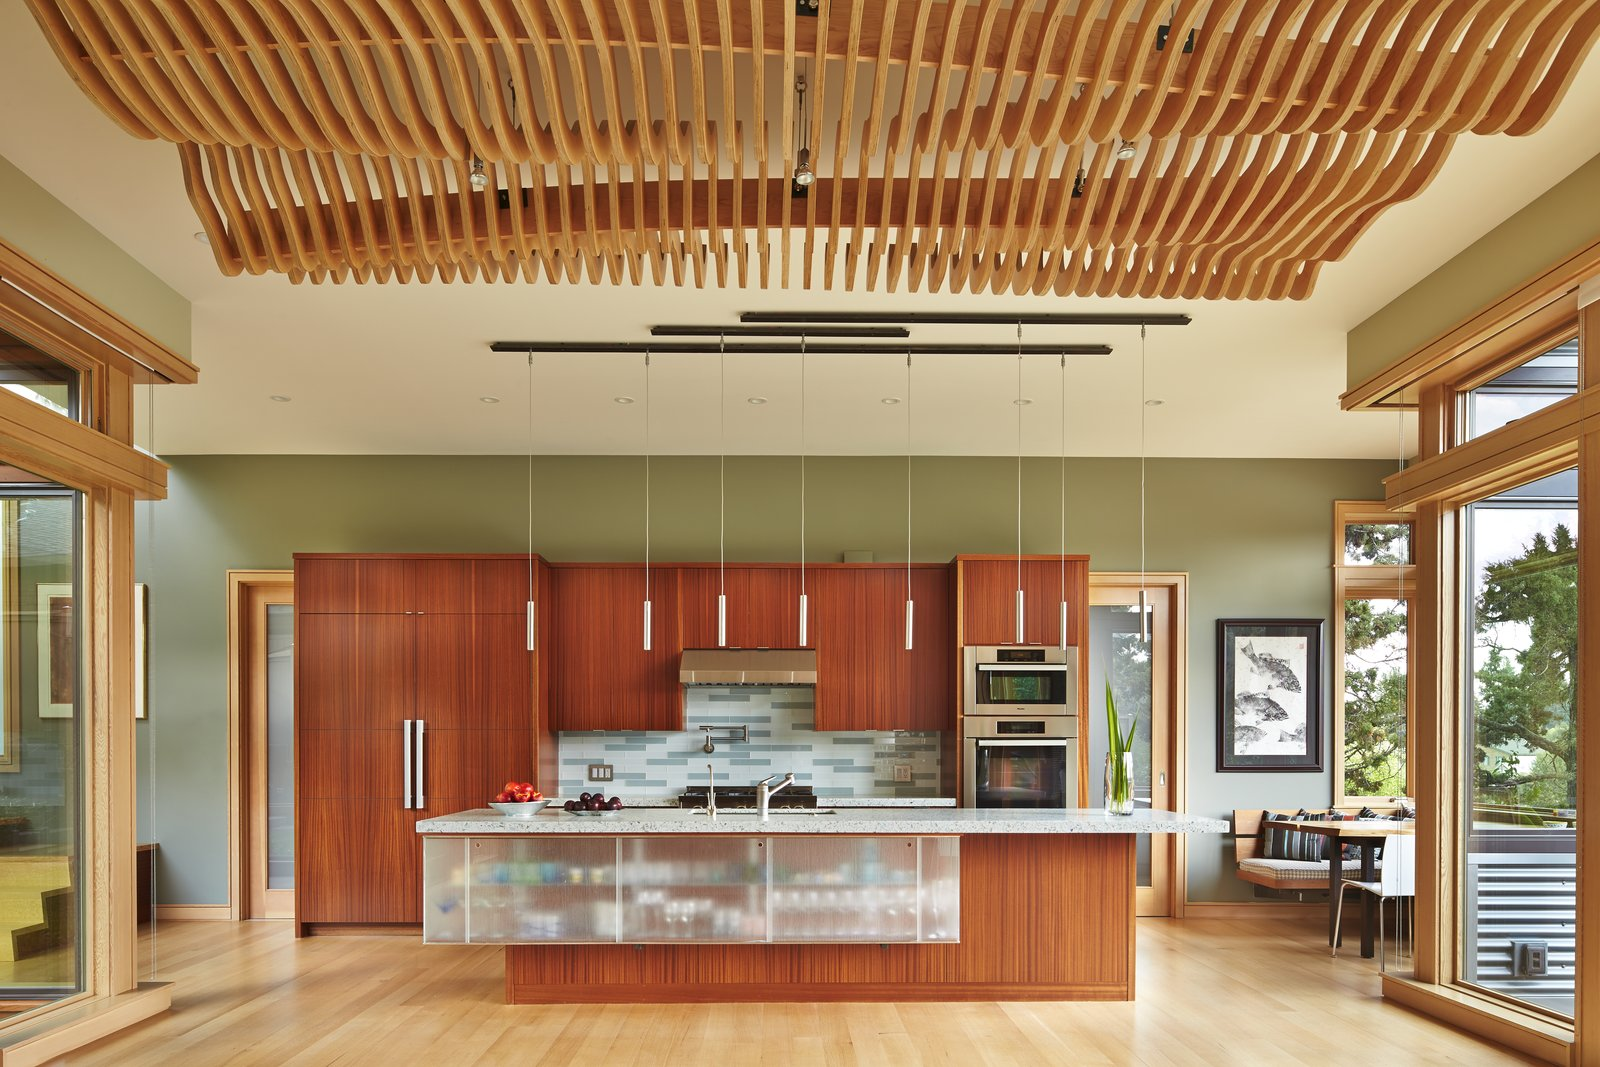 Kitchen, Glass Tile Backsplashe, Ceiling Lighting, Wood Cabinet, Wall Oven, Light Hardwood Floor, Cooktops, Refrigerator, Undermount Sink, Pendant Lighting, and Engineered Quartz Counter Kitchen with undulating wood screen ceiling over dining area  DESCHUTES House by FINNE Architects